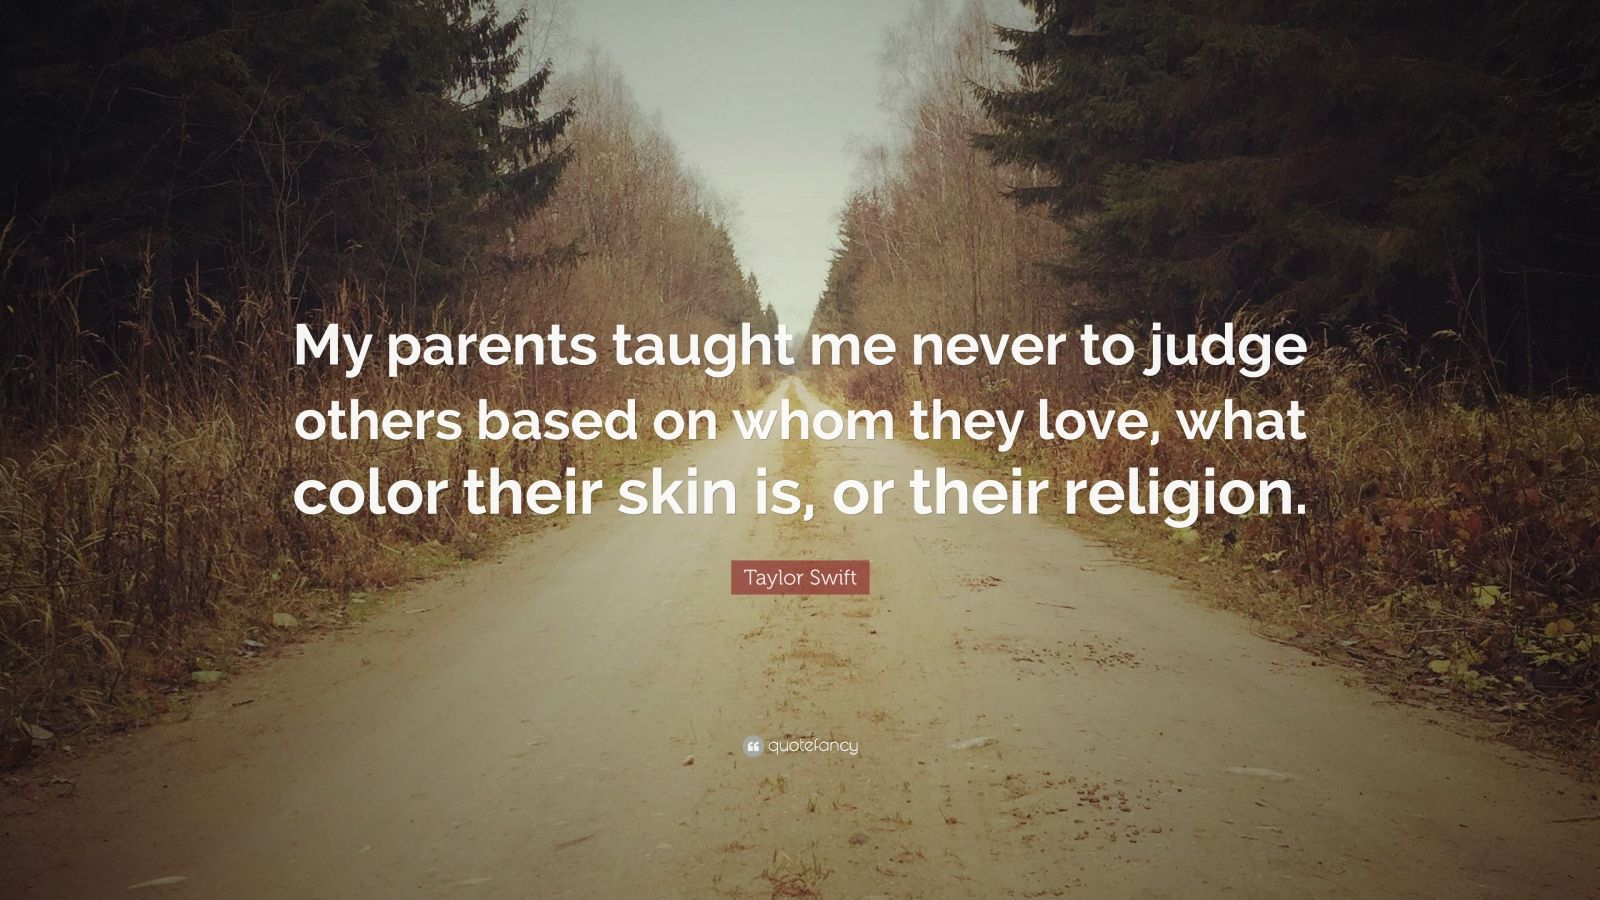 """Taylor Swift Quote: """"My parents taught me never to judge others based on whom they love, what color their skin is, or their religion."""""""